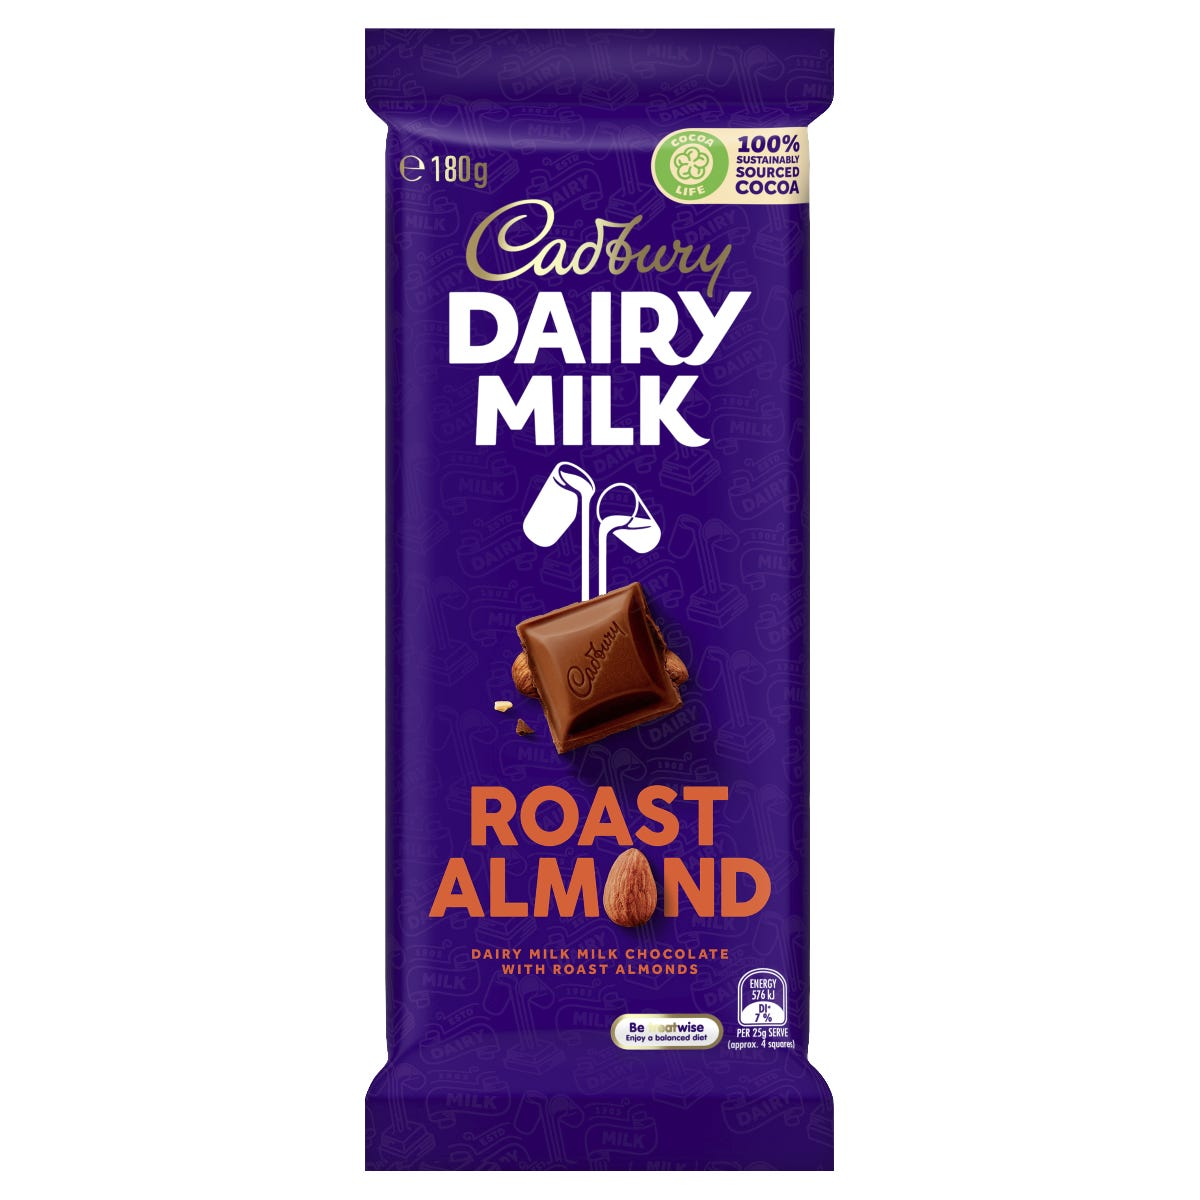 Cadbury Dairy Milk Roast Almond milk chocolate block 180g